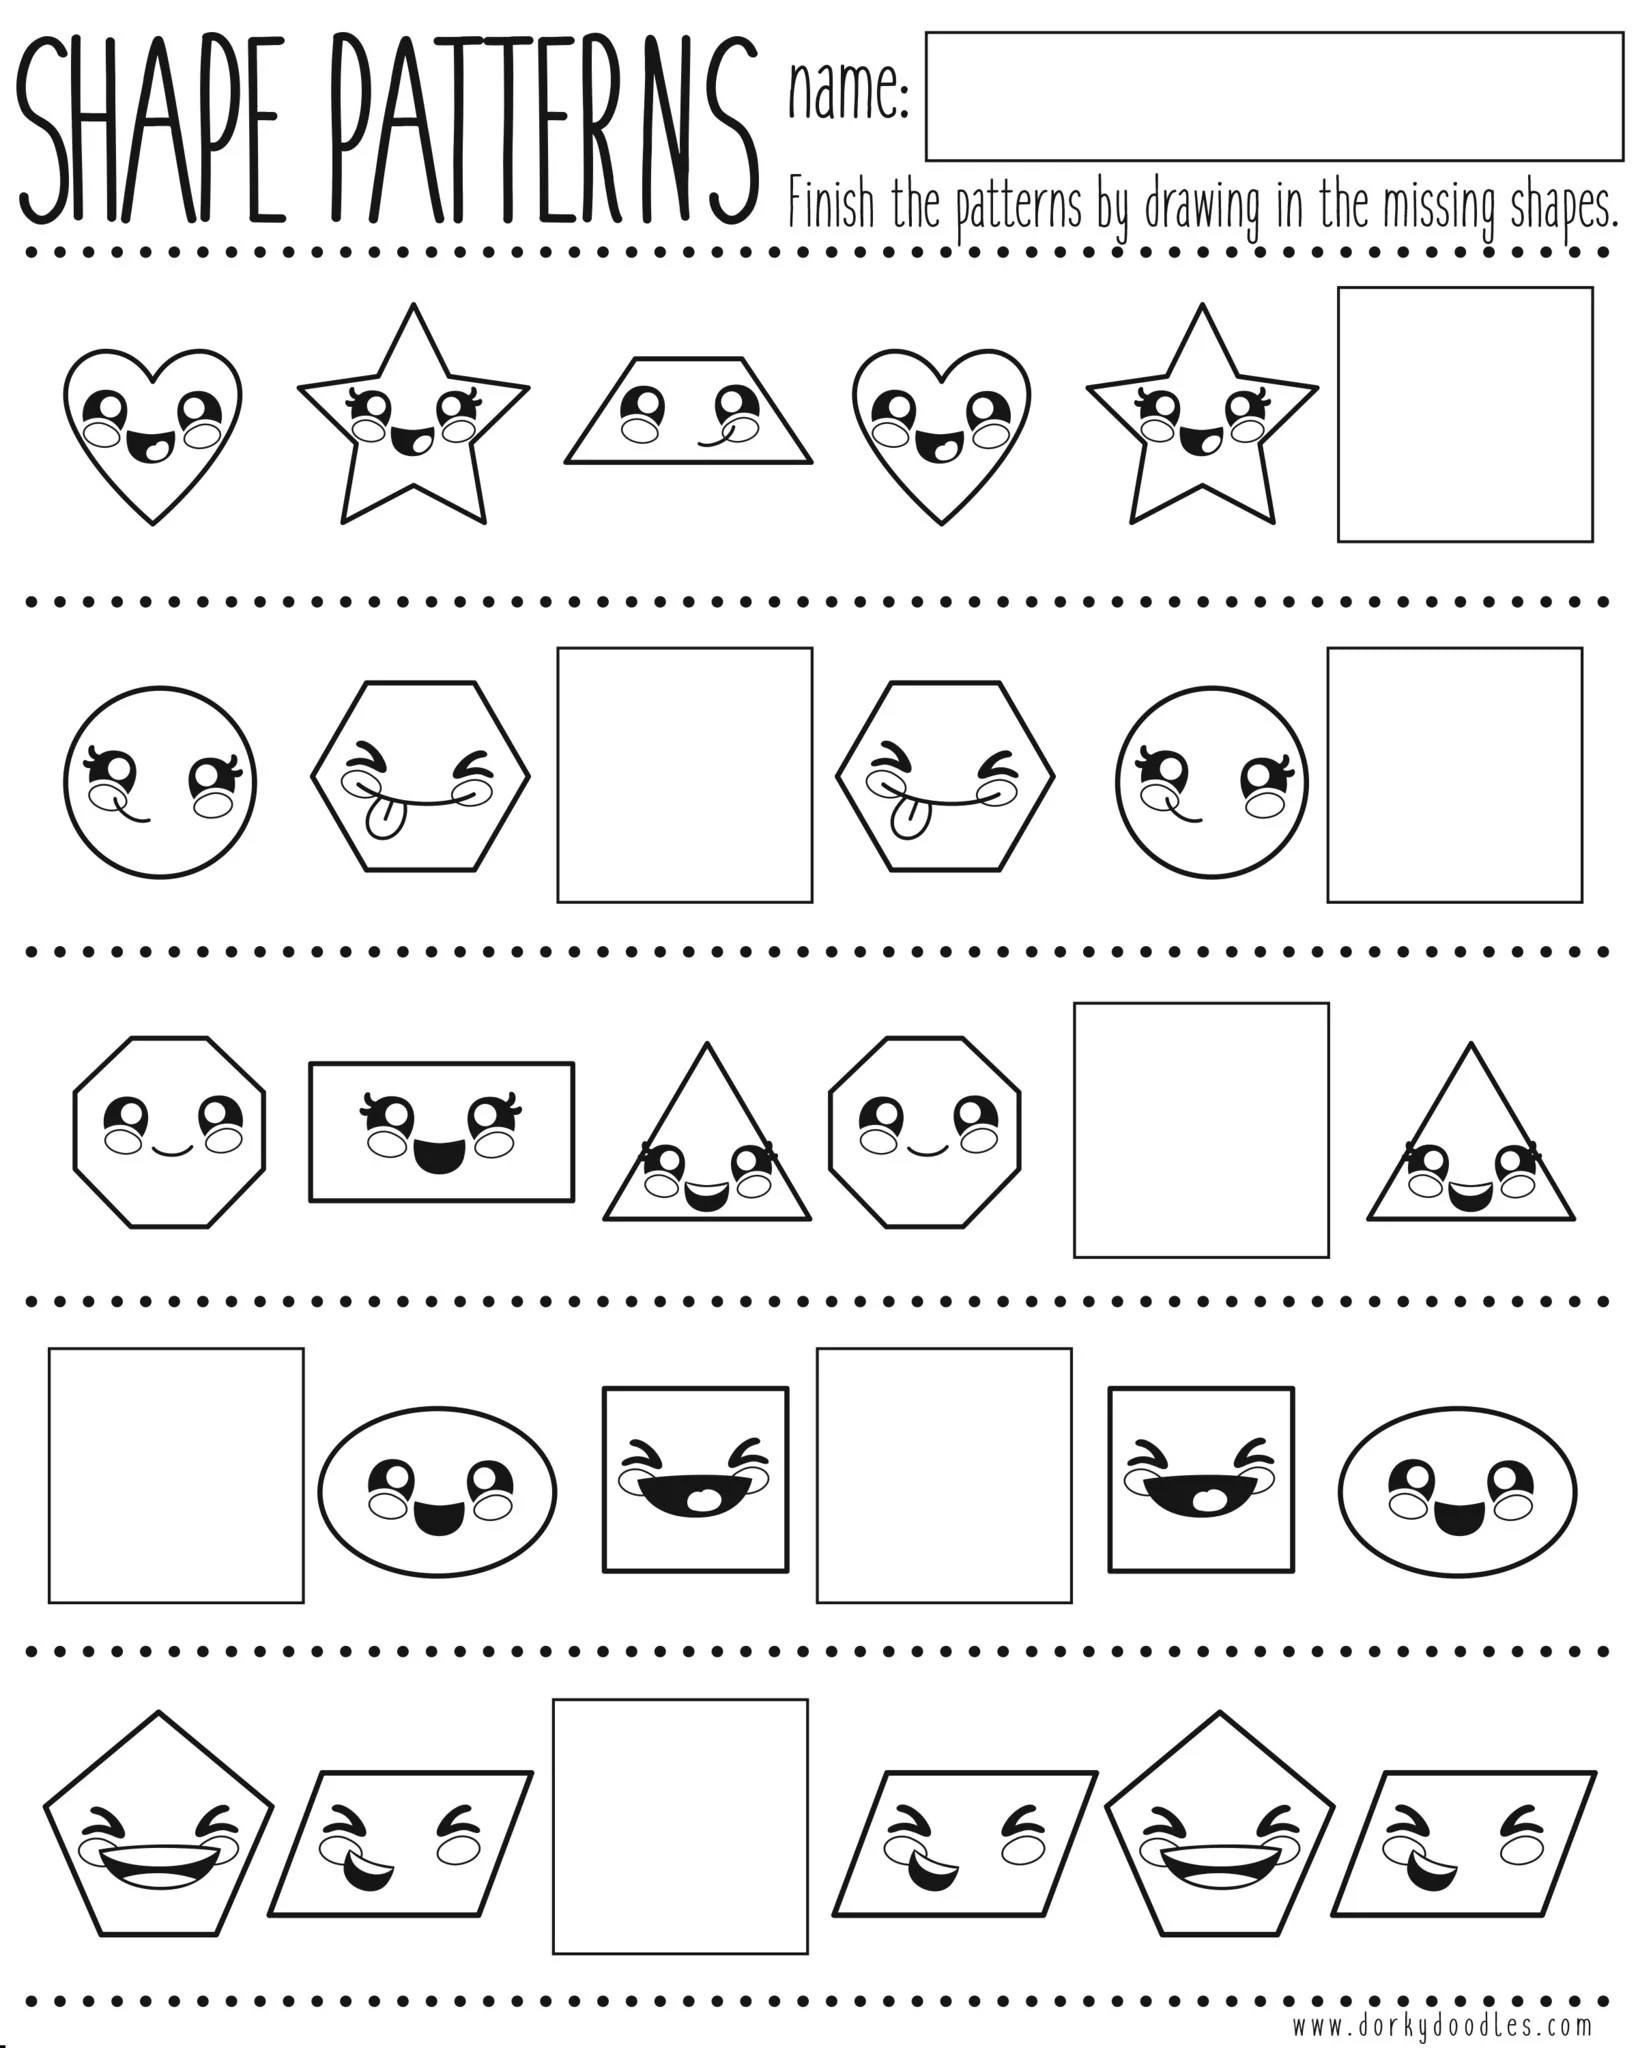 medium resolution of Shapes and Pattern Practice Printable Worksheet – Dorky Doodles